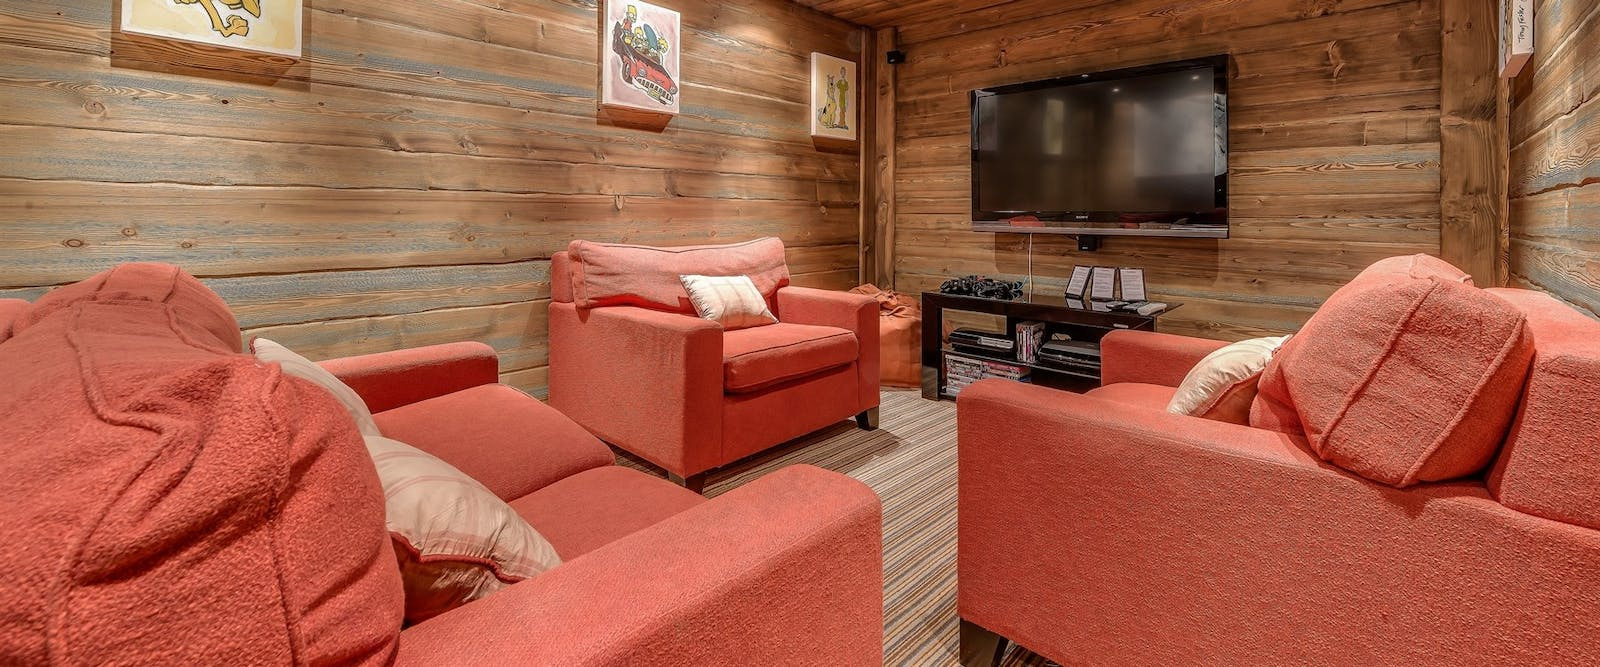 Cinema Room at Chalet Chopine